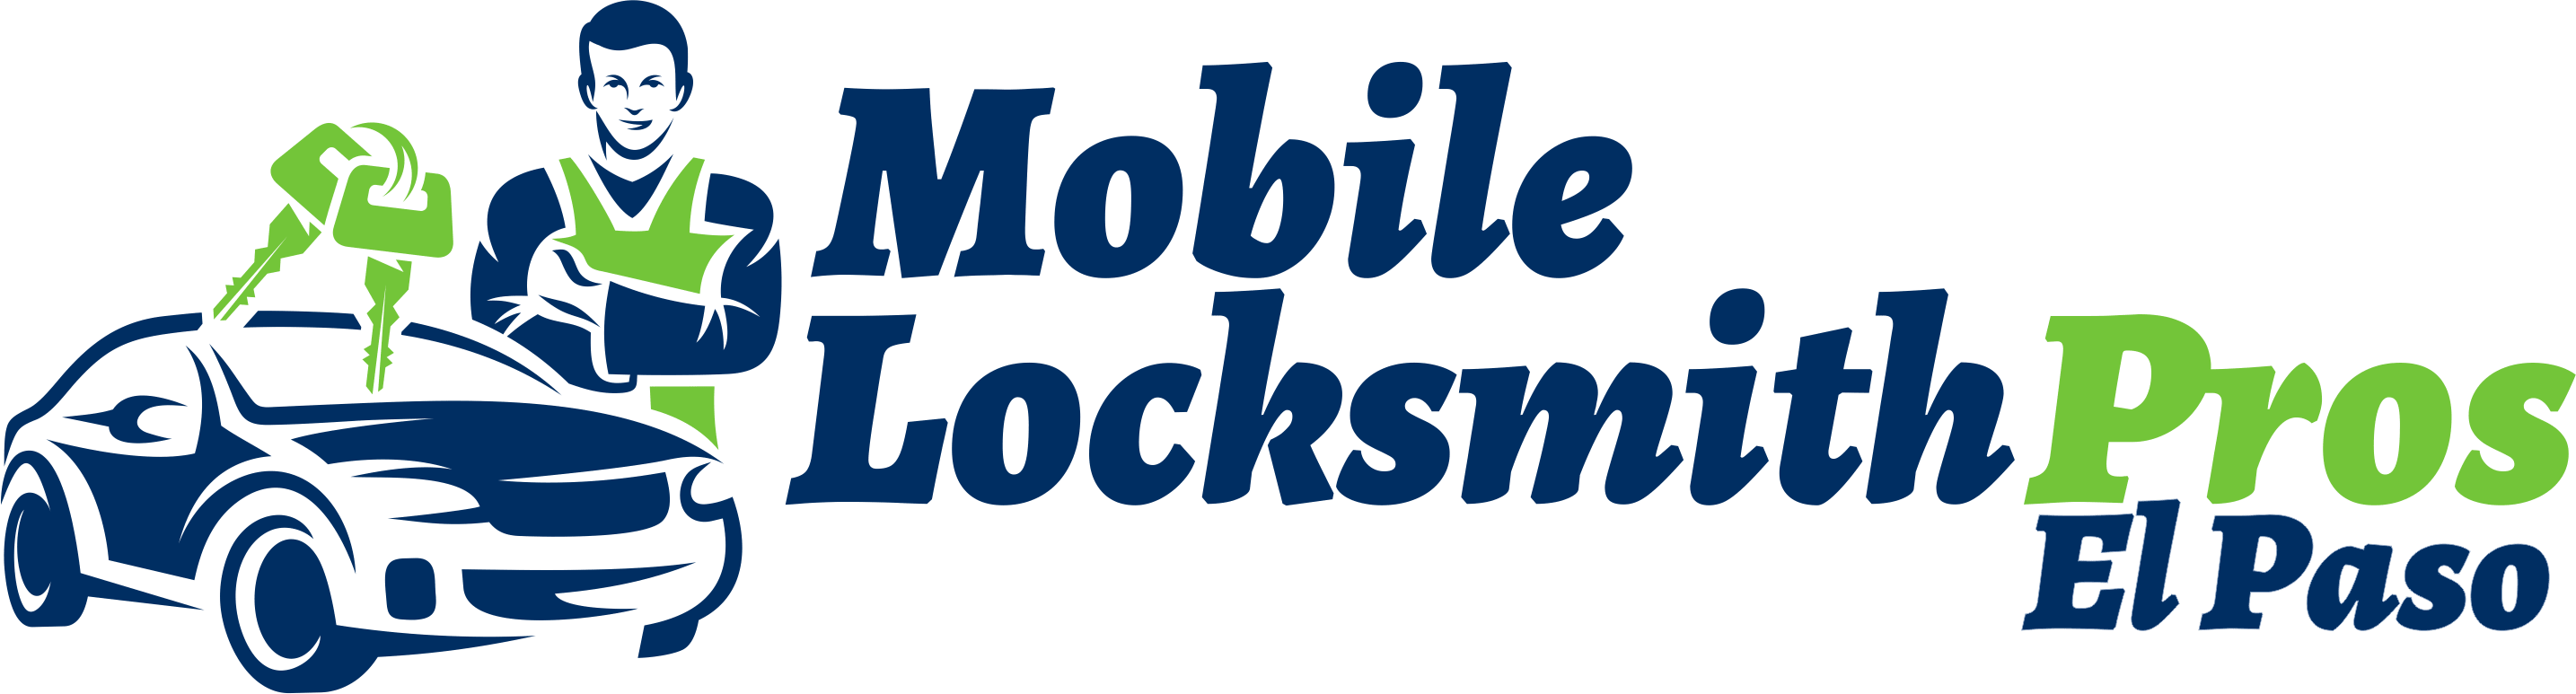 Mobile Locksmith Pros El Paso Logo